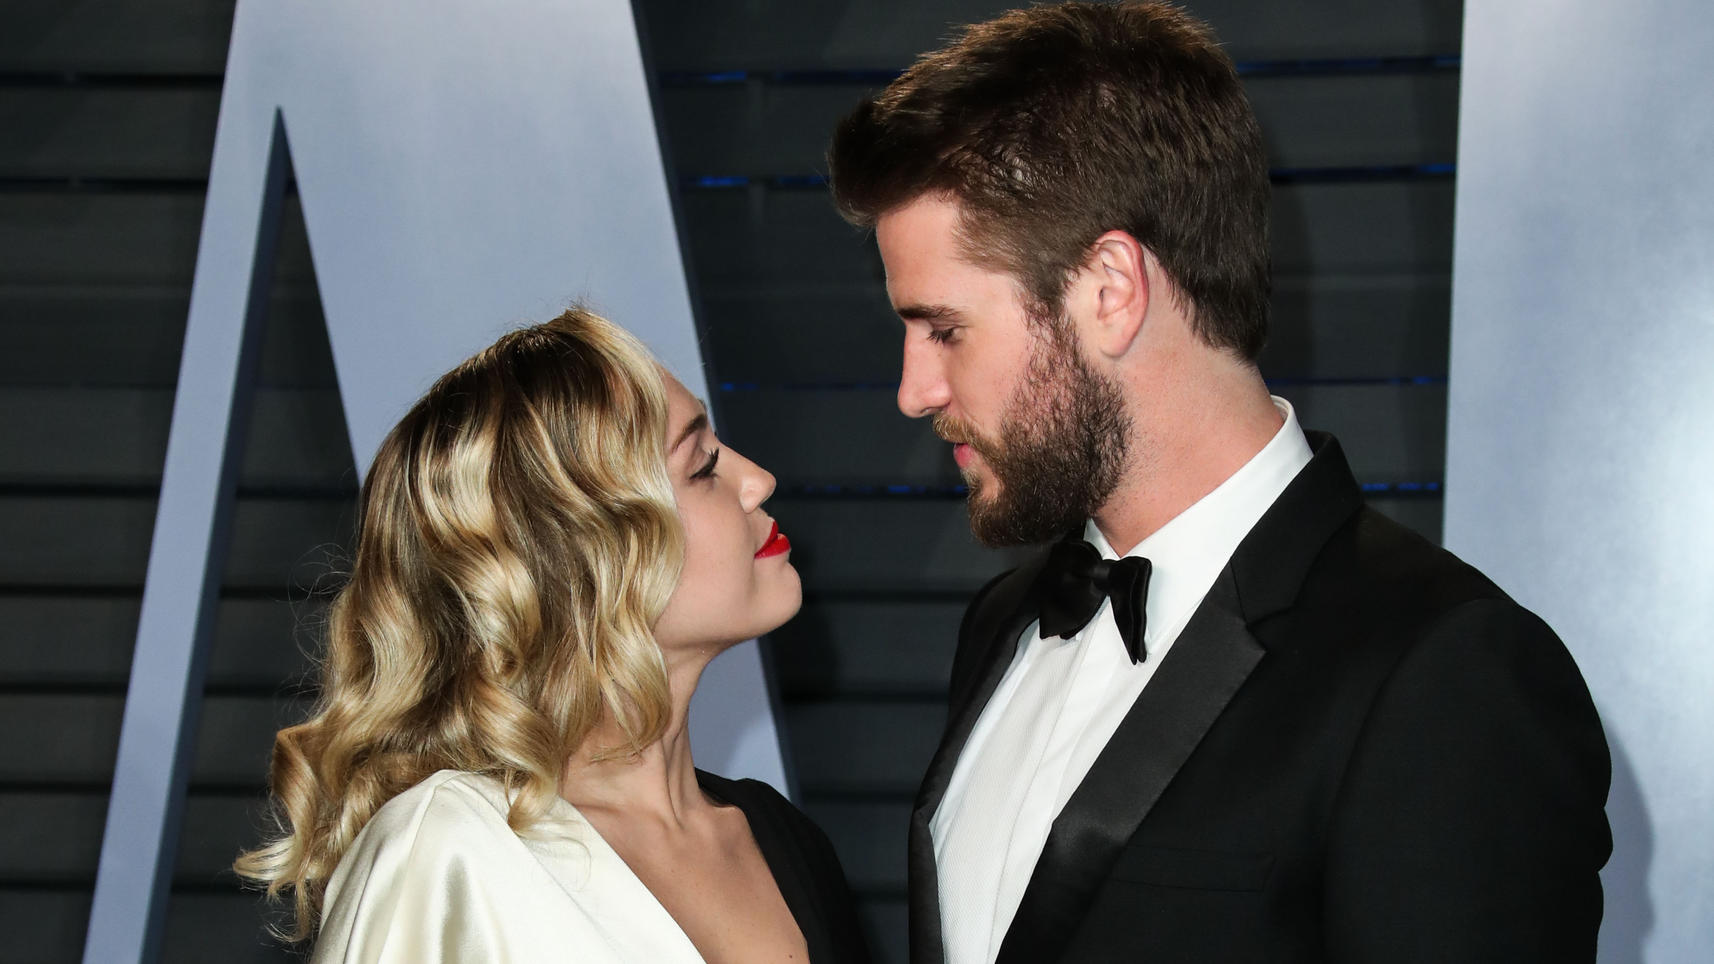 (FILE) Miley Cyrus and Liam Hemsworth Split. BEVERLY HILLS, LOS ANGELES, CALIFORNIA, USA - MARCH 04: Singer Miley Cyrus and boyfriend/actor Liam Hemsworth arrive at the 2018 Vanity Fair Oscar Party held at the Wallis Annenberg Center for the Performi